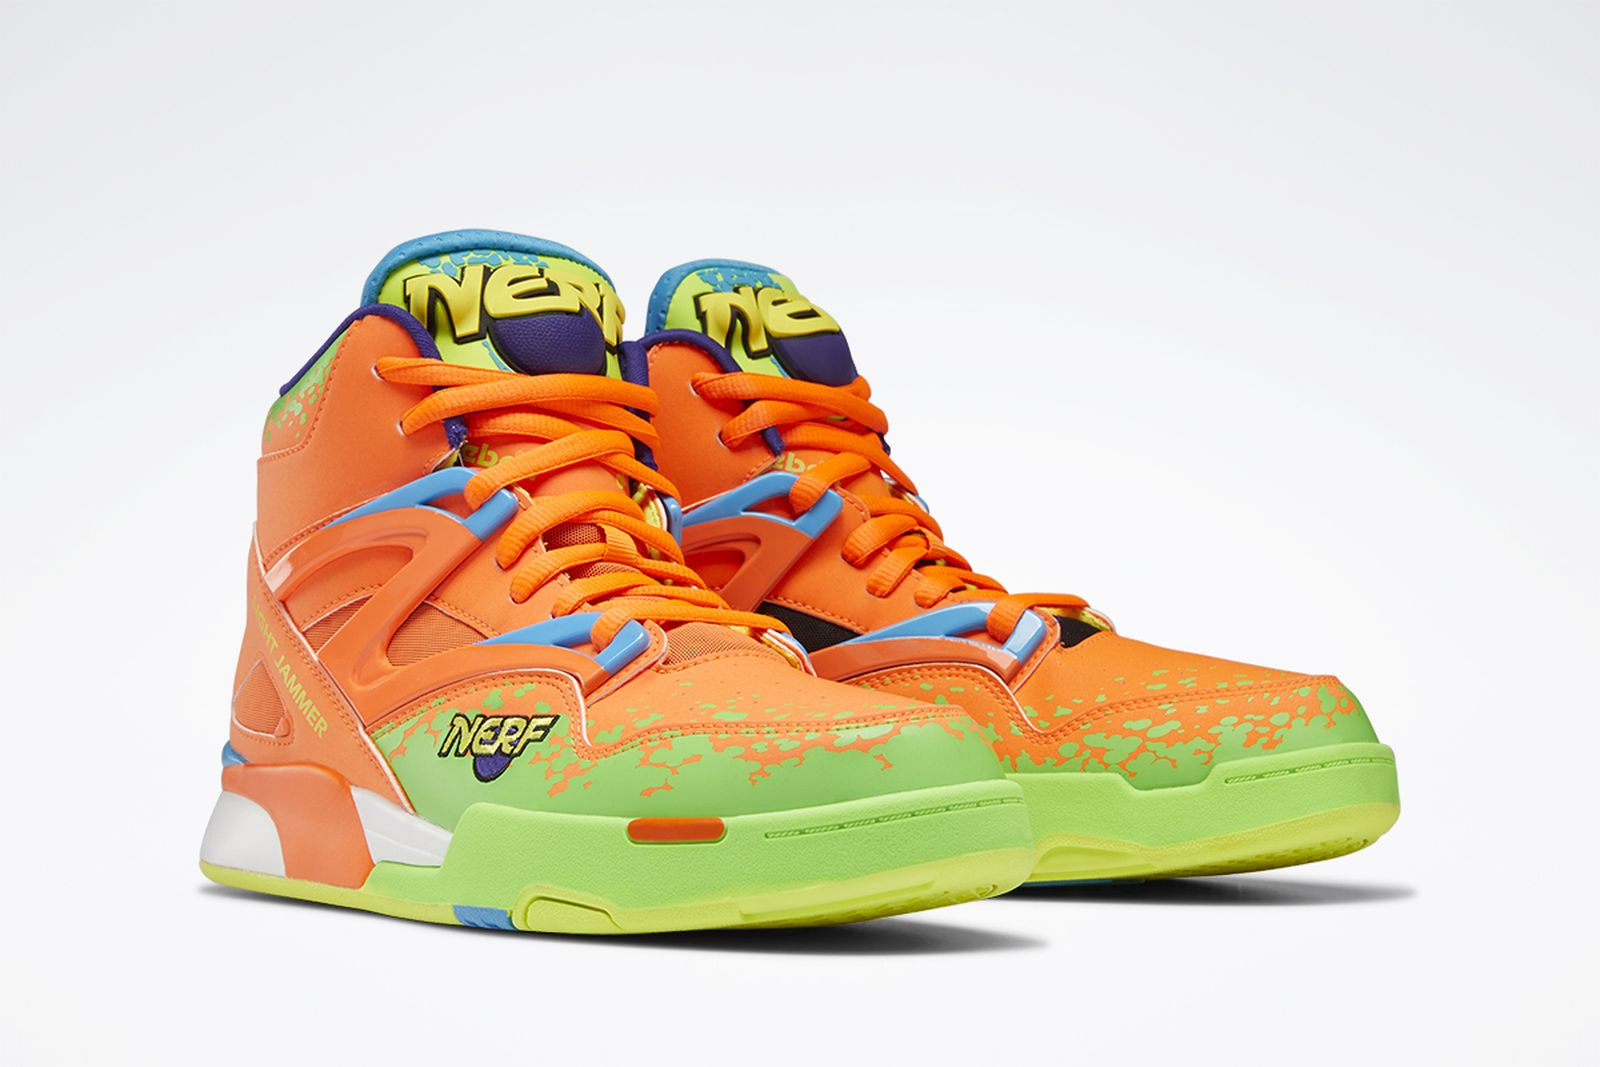 nerf-reebok-retro-basketball-collection-release-date-price-16